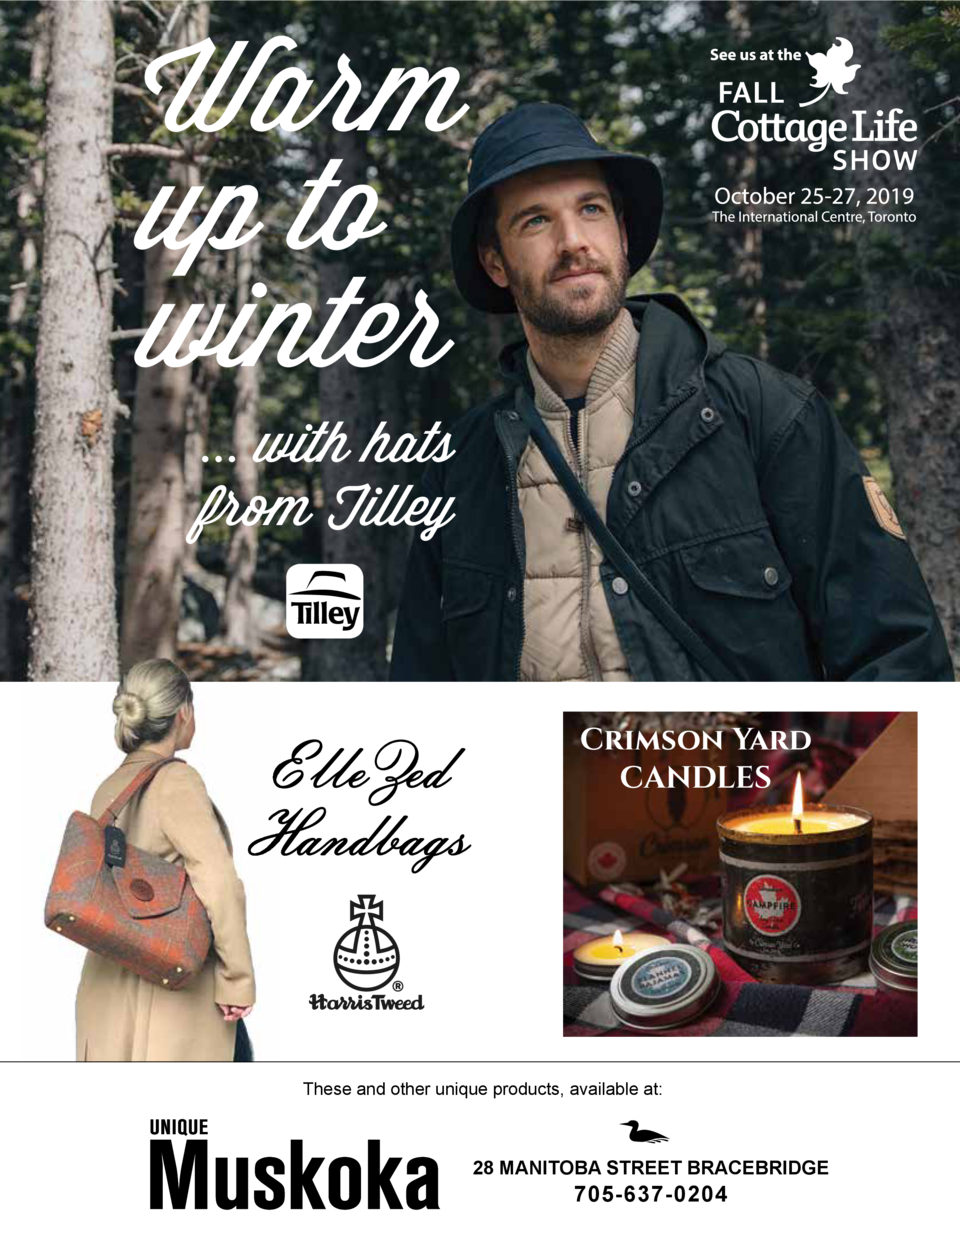 Warm up to winter ... with hats from Tilley  Crimson Yard CANDLES  These and other unique products, available at   28 MANI...